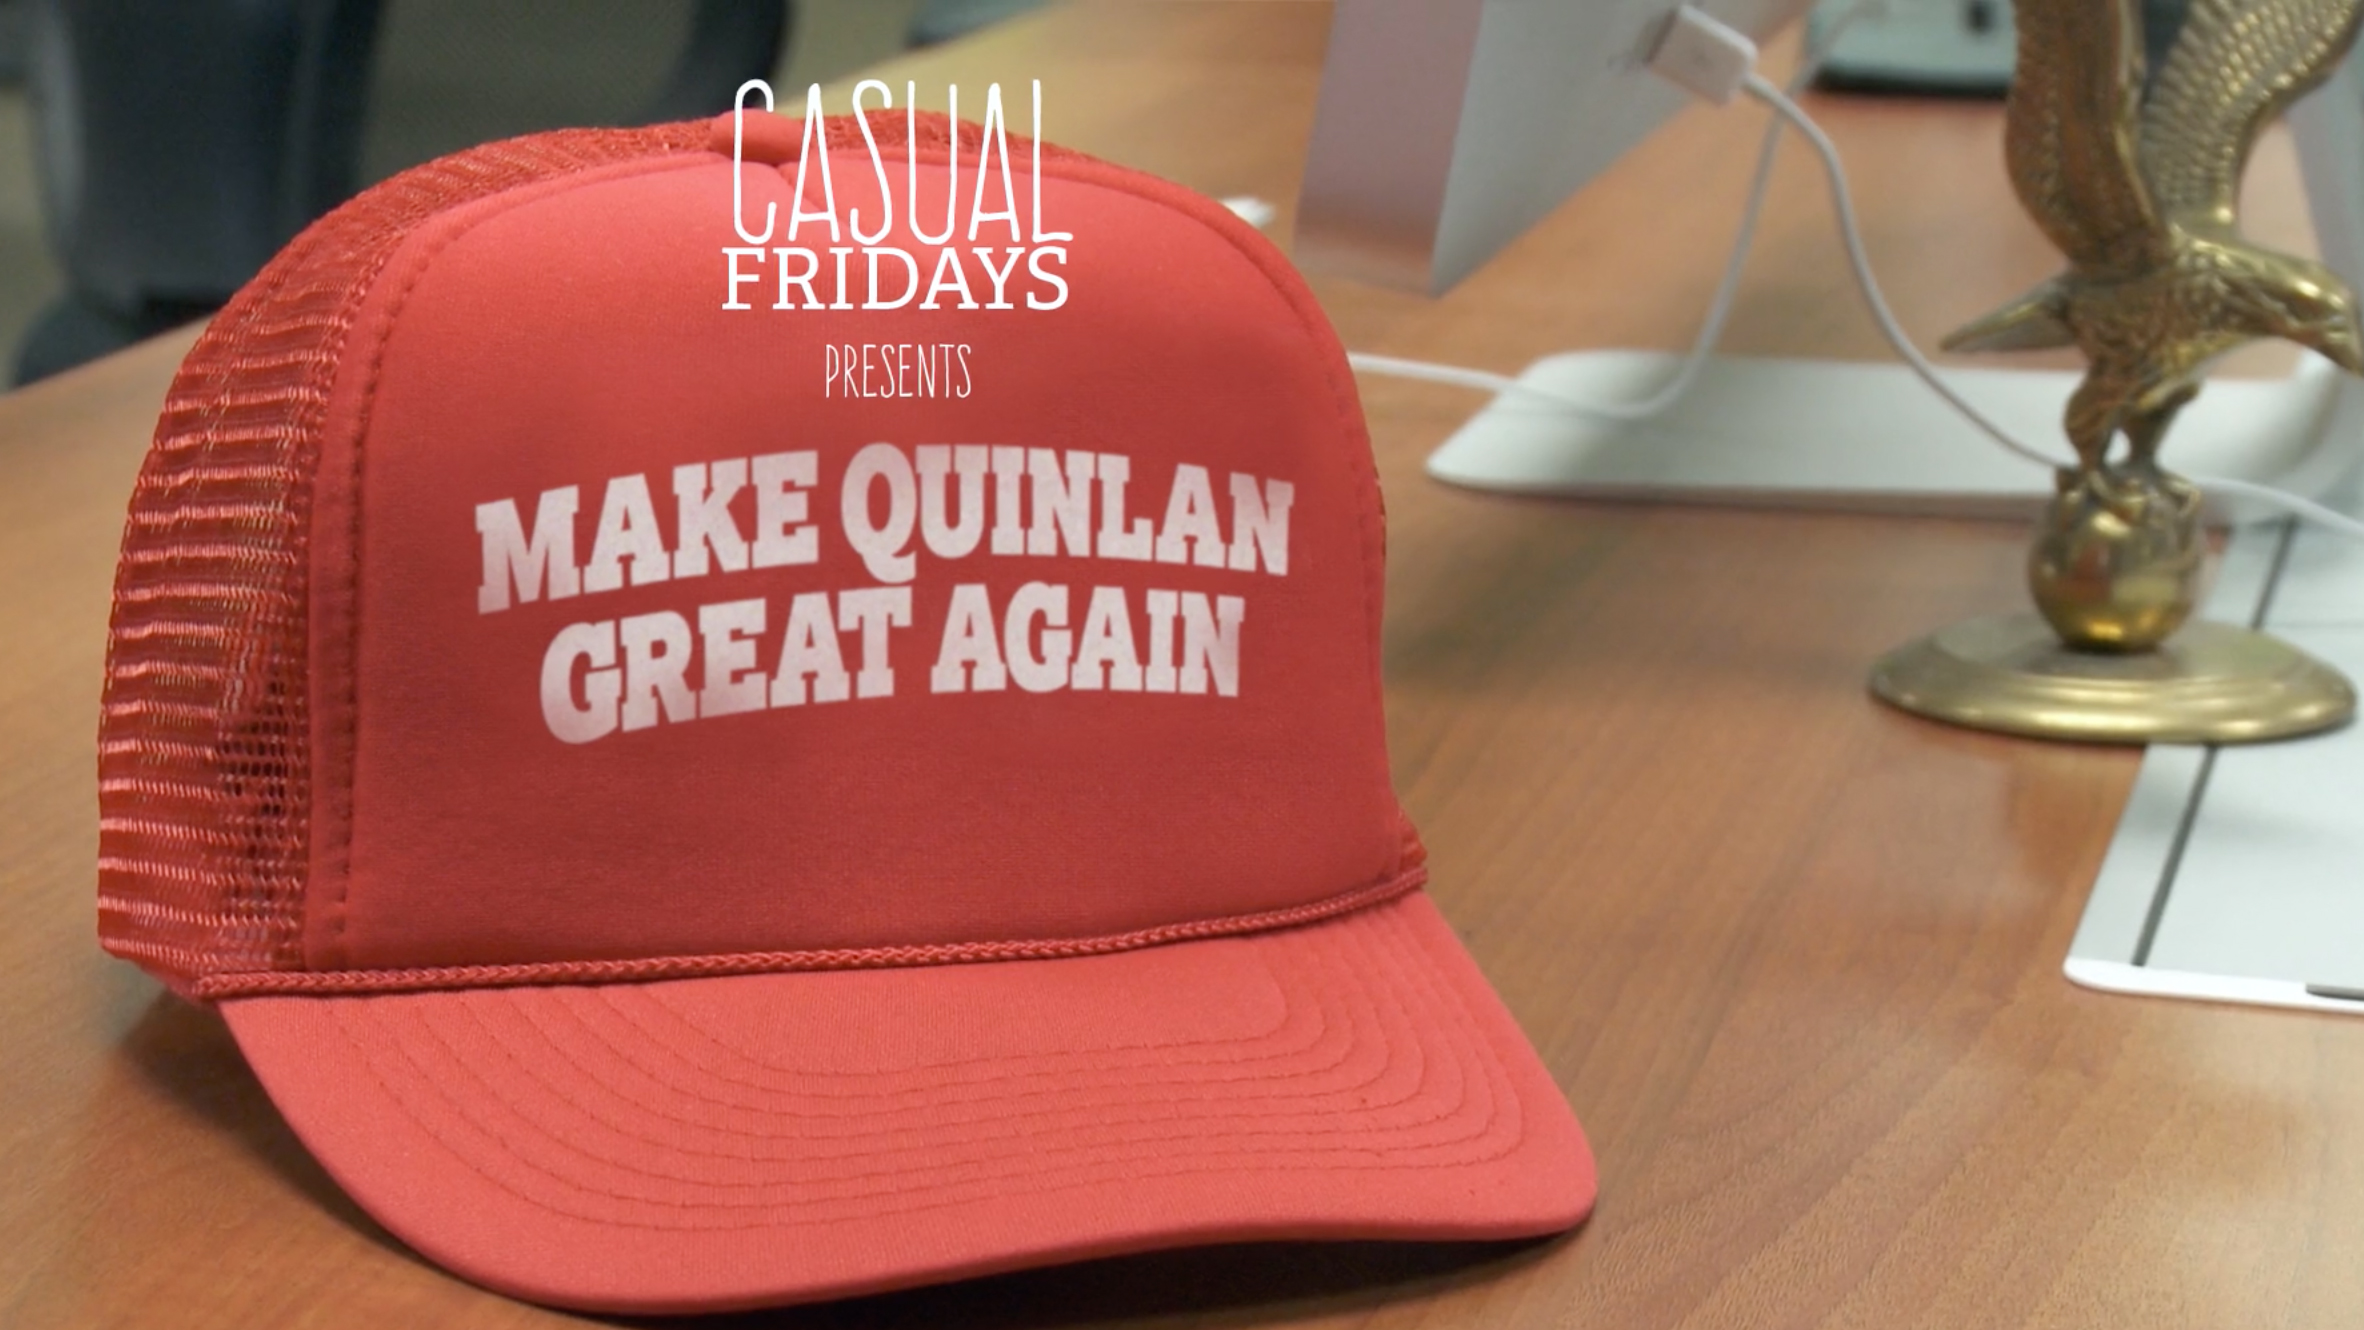 Make Quinlan Great Again!